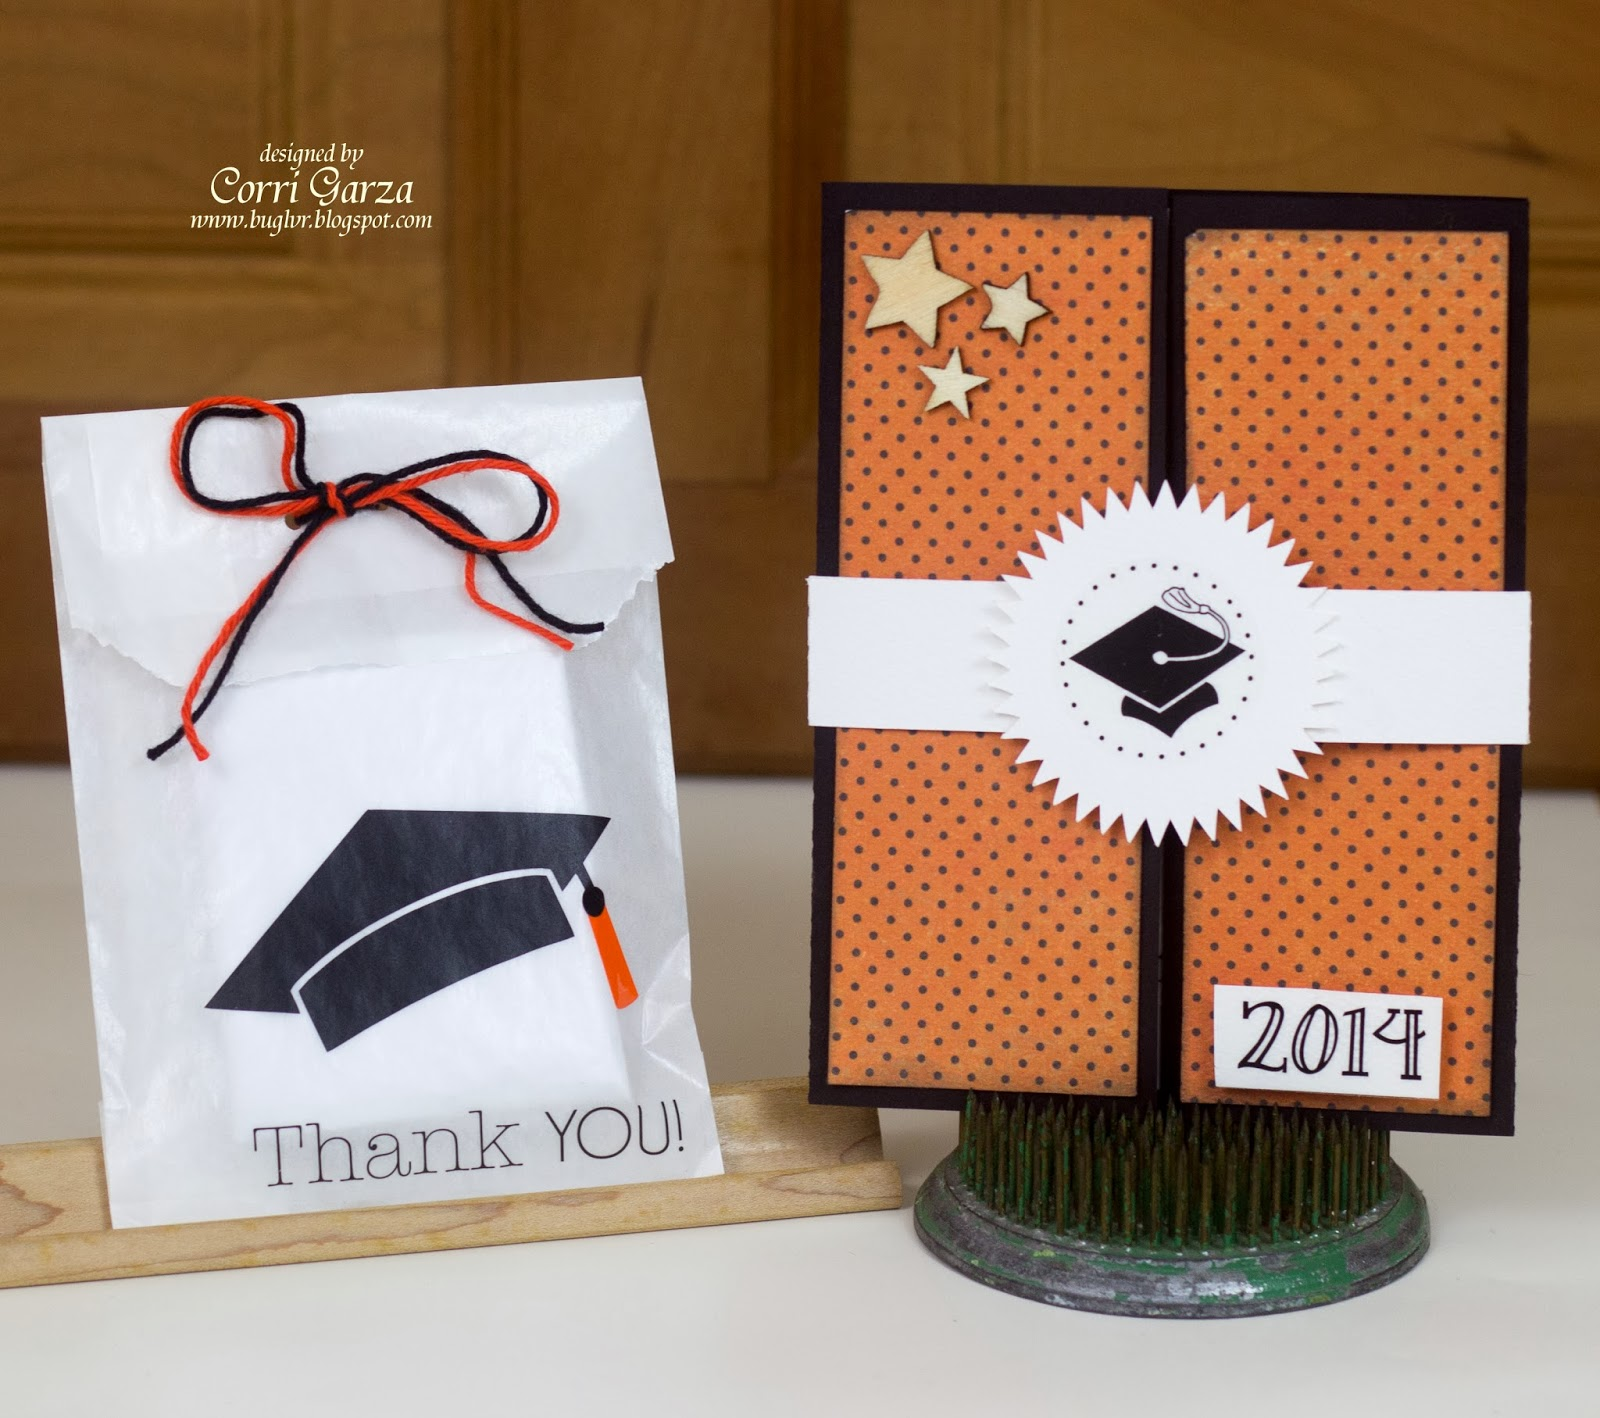 SRM Stickers Blog - Graduation Invite & Favor by Corri - #card #glassine #bag #2014 #graduation #stickers #vinyl #twine